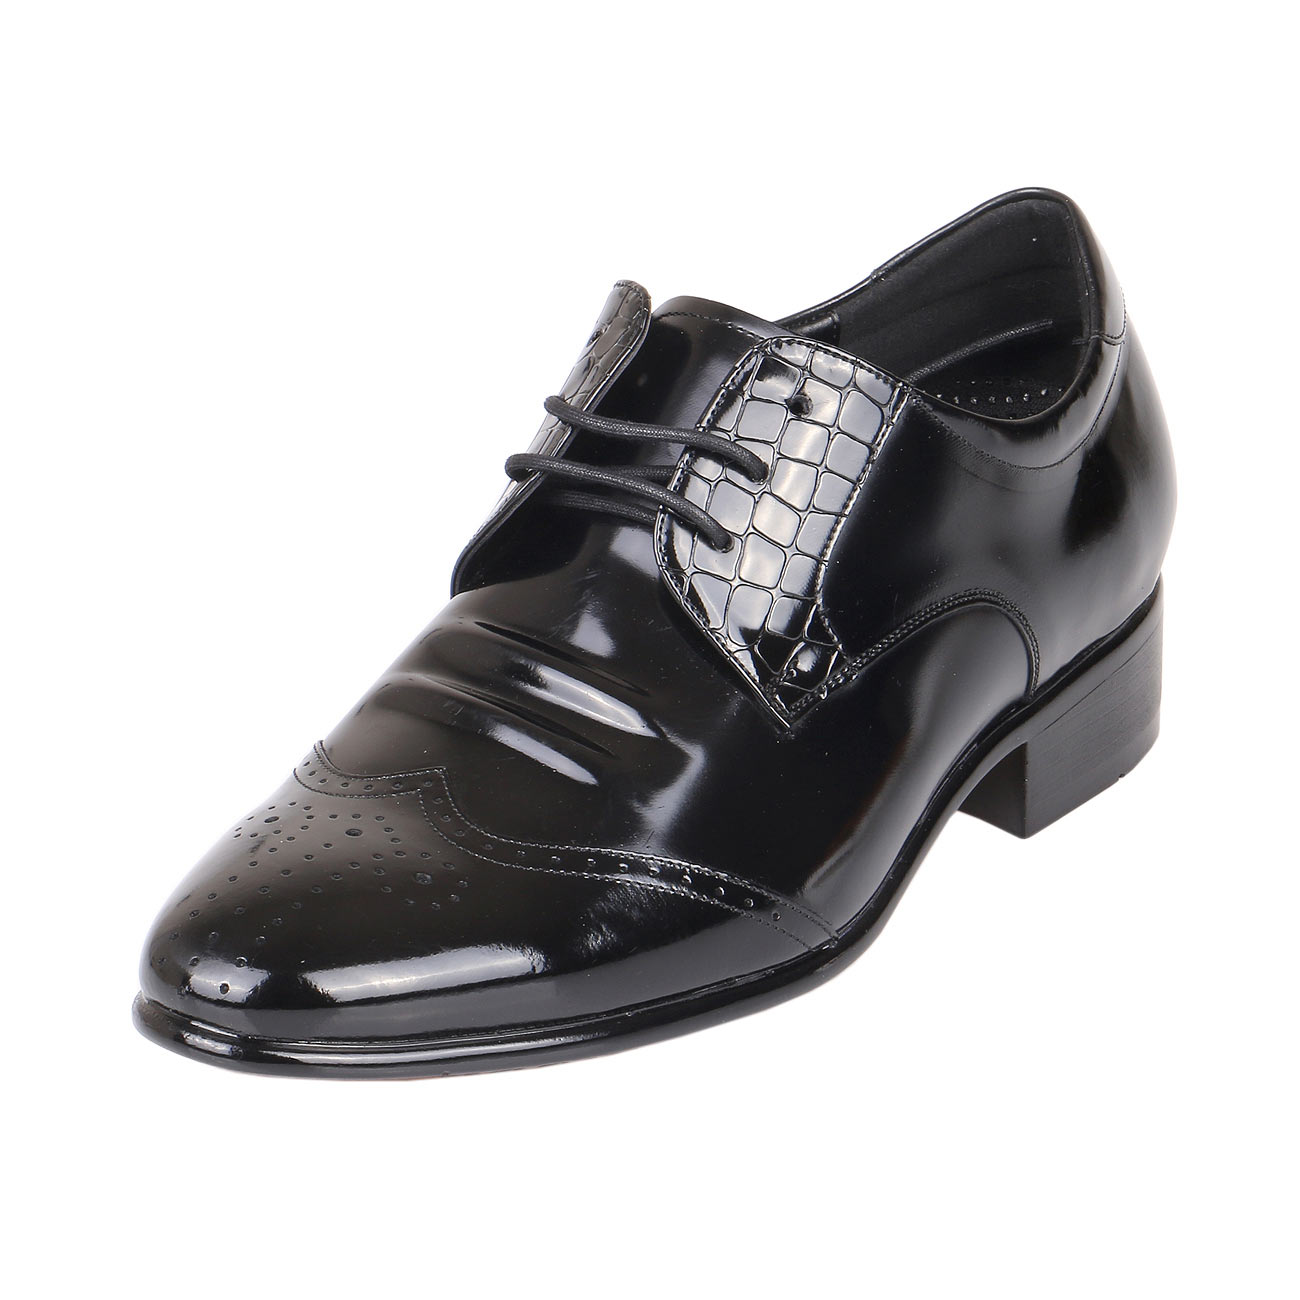 Men's Height Heels Glossy Wing Tip Leather Black Shoes 2.4